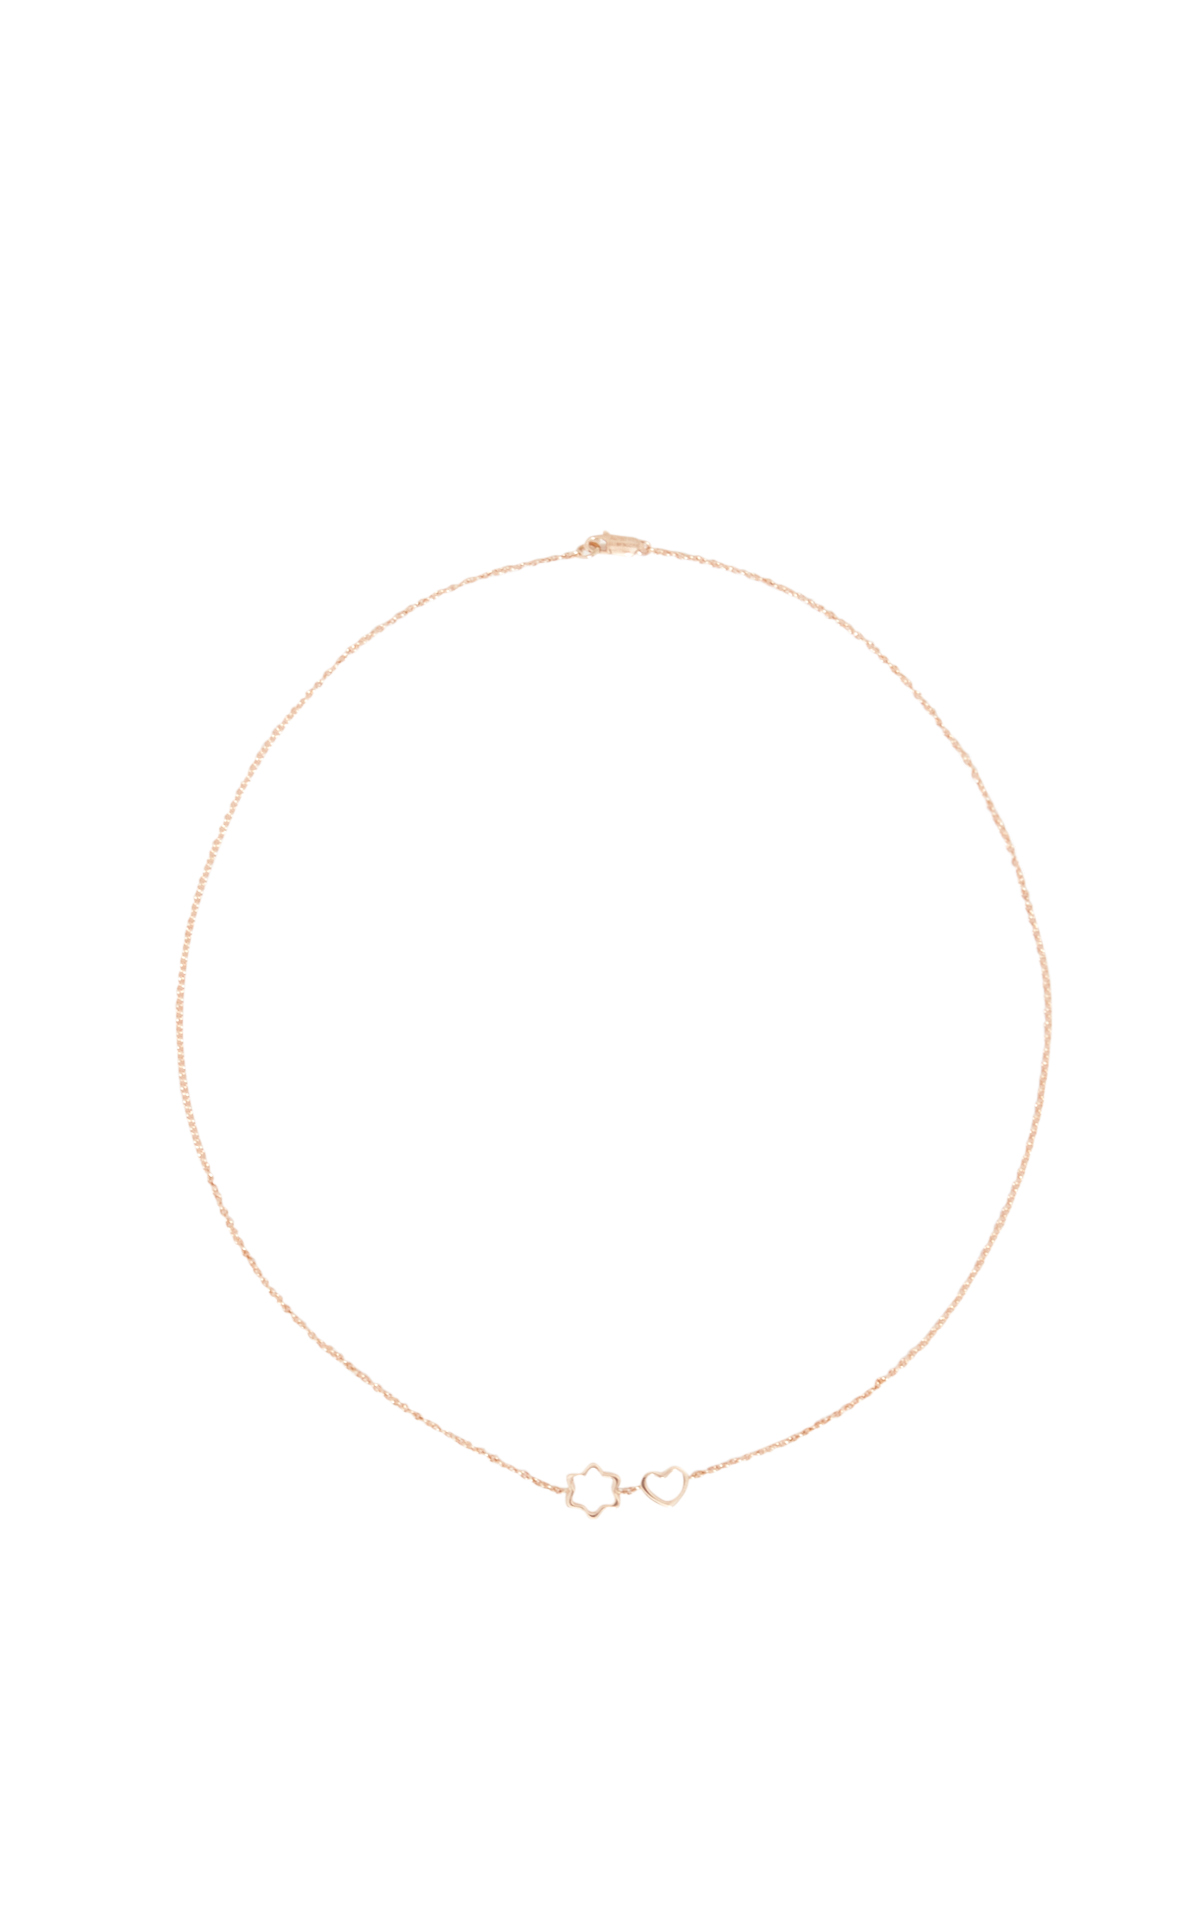 Montblanc Women's 18ct gold necklace*